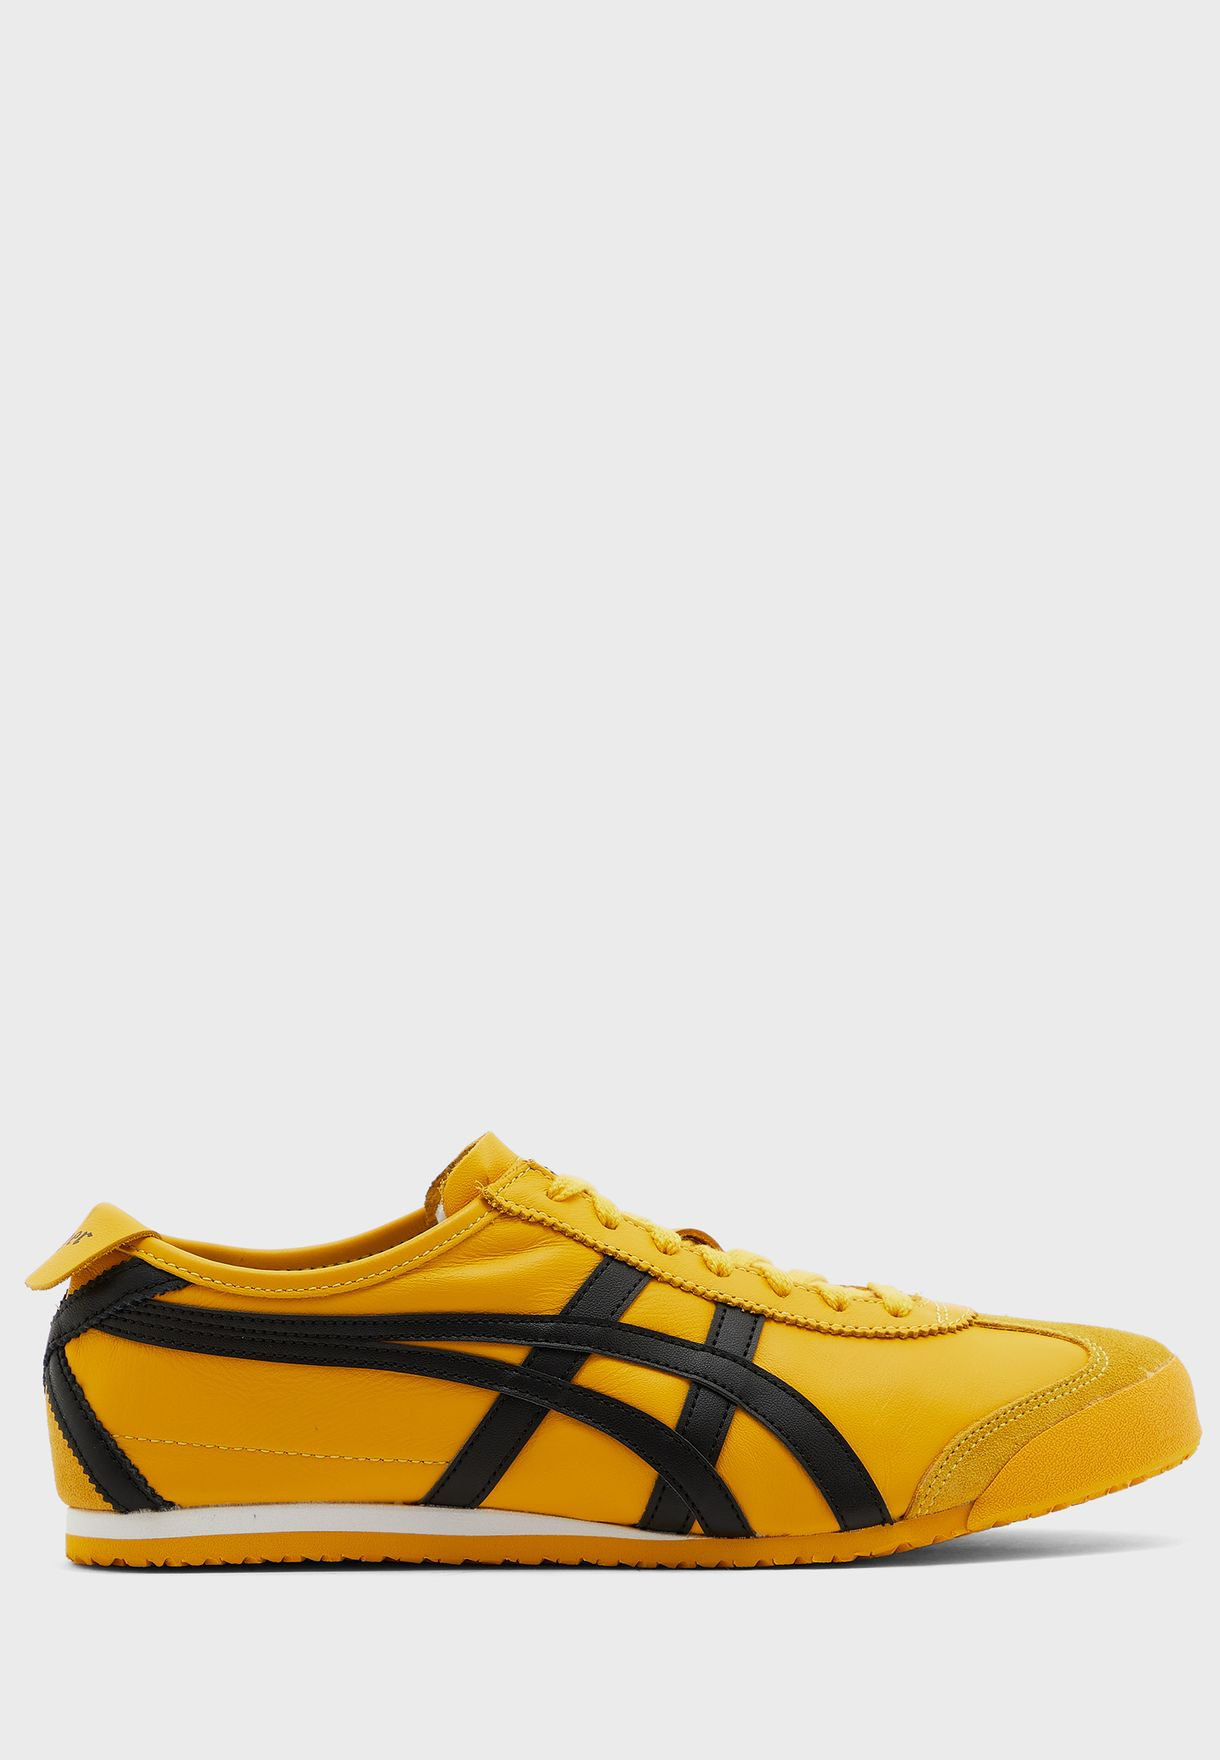 onitsuka tiger mexico 66 black and pink yellow zoom brown